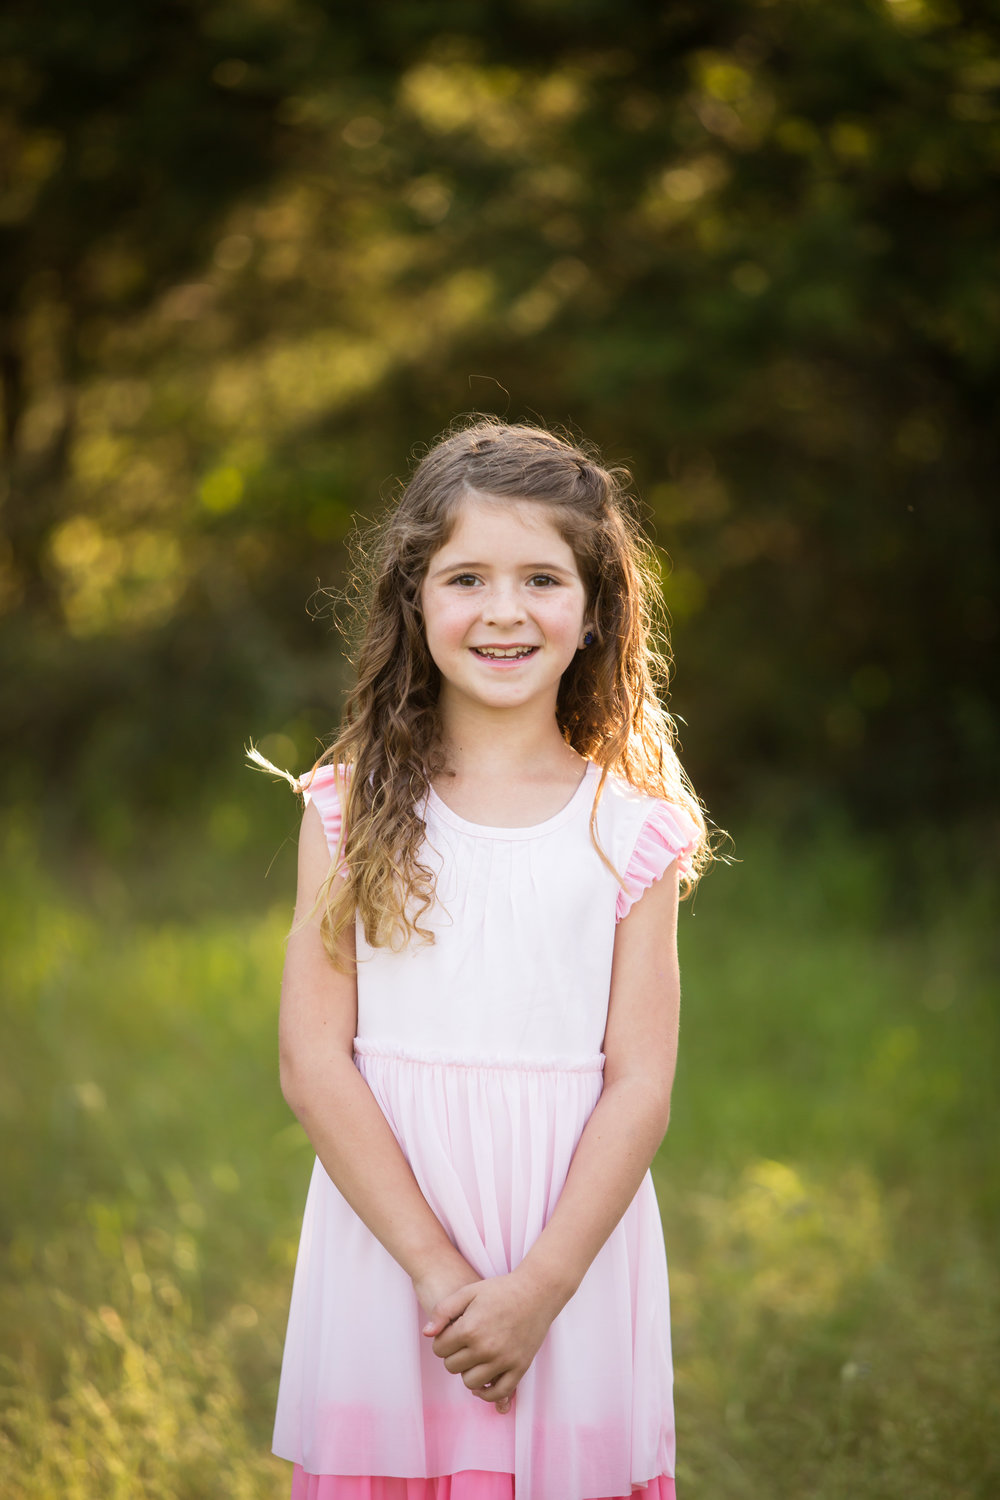 Marble_Falls_Horseshoe_Bay_Photographer_Turner_Family_05.jpg